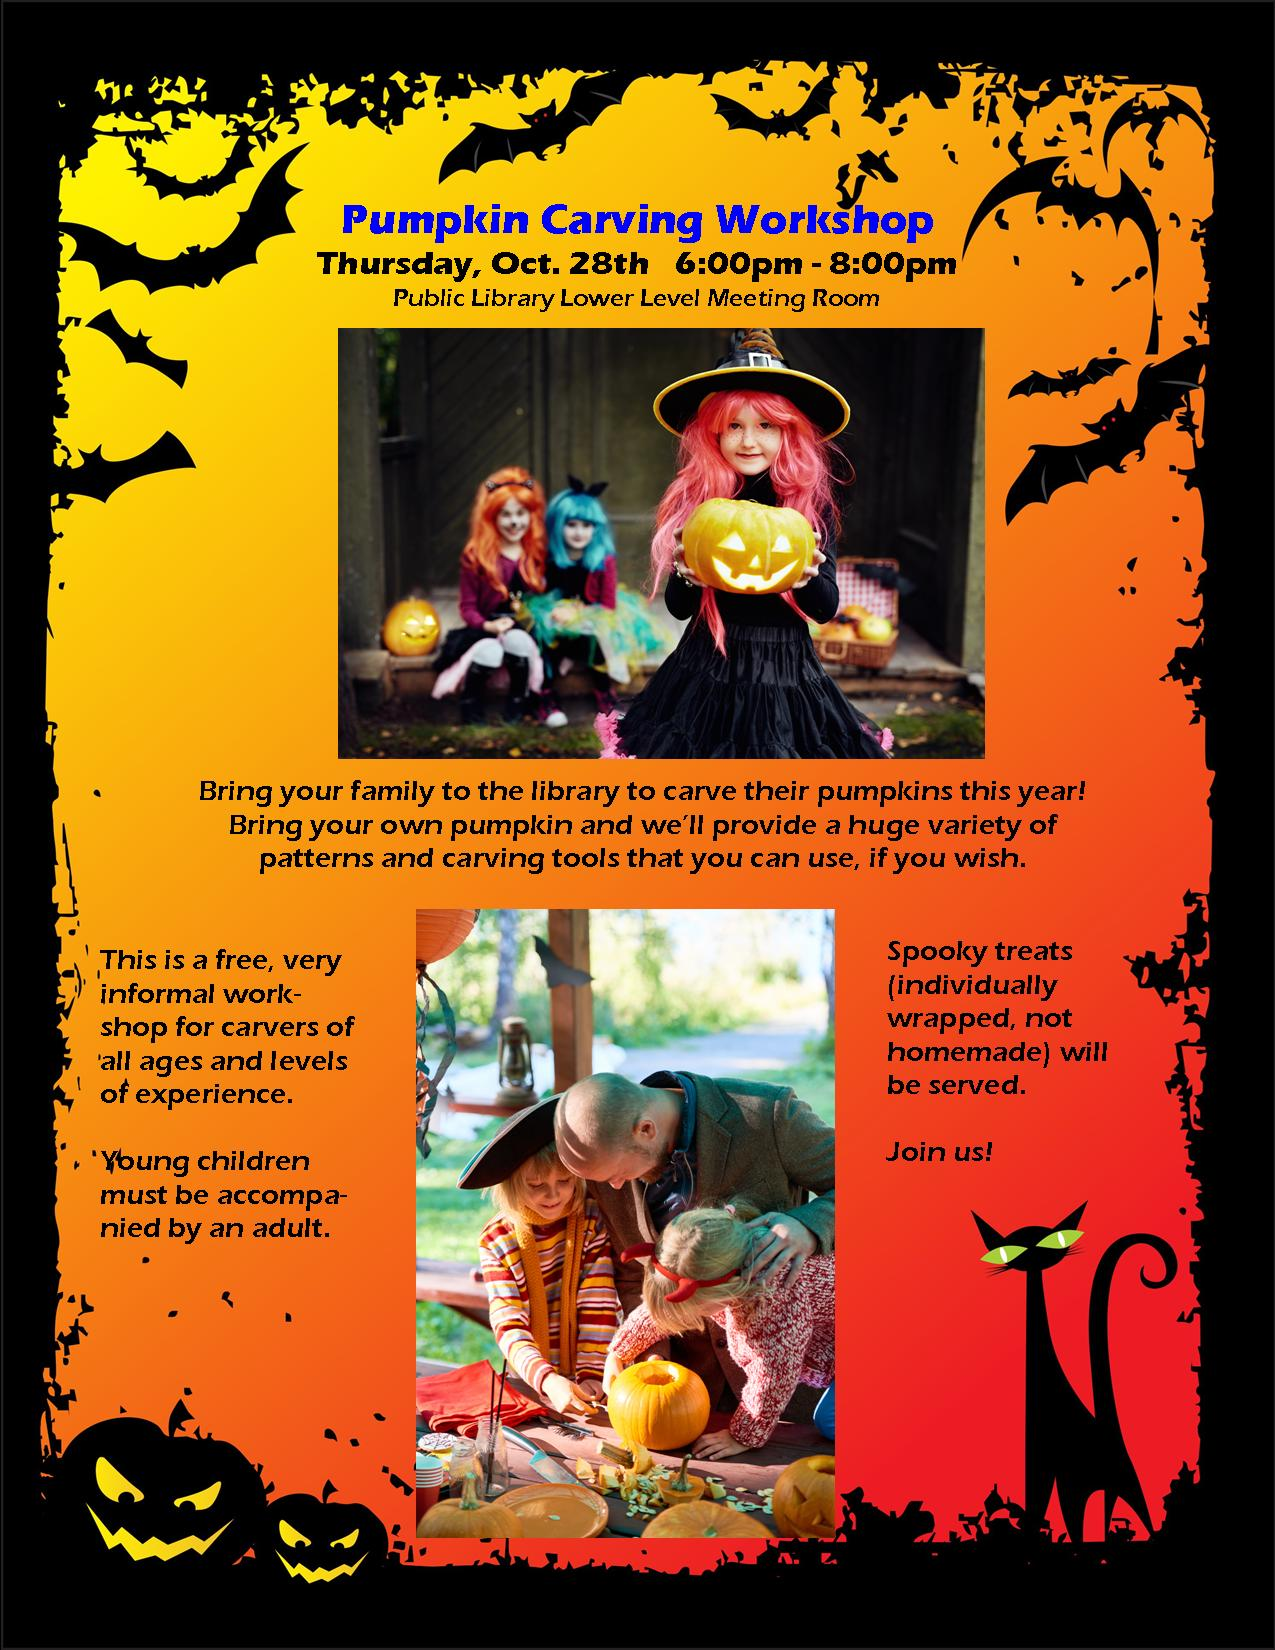 Pumpkin Carving Workshop at the library, Oct 28th, 6-8pm.